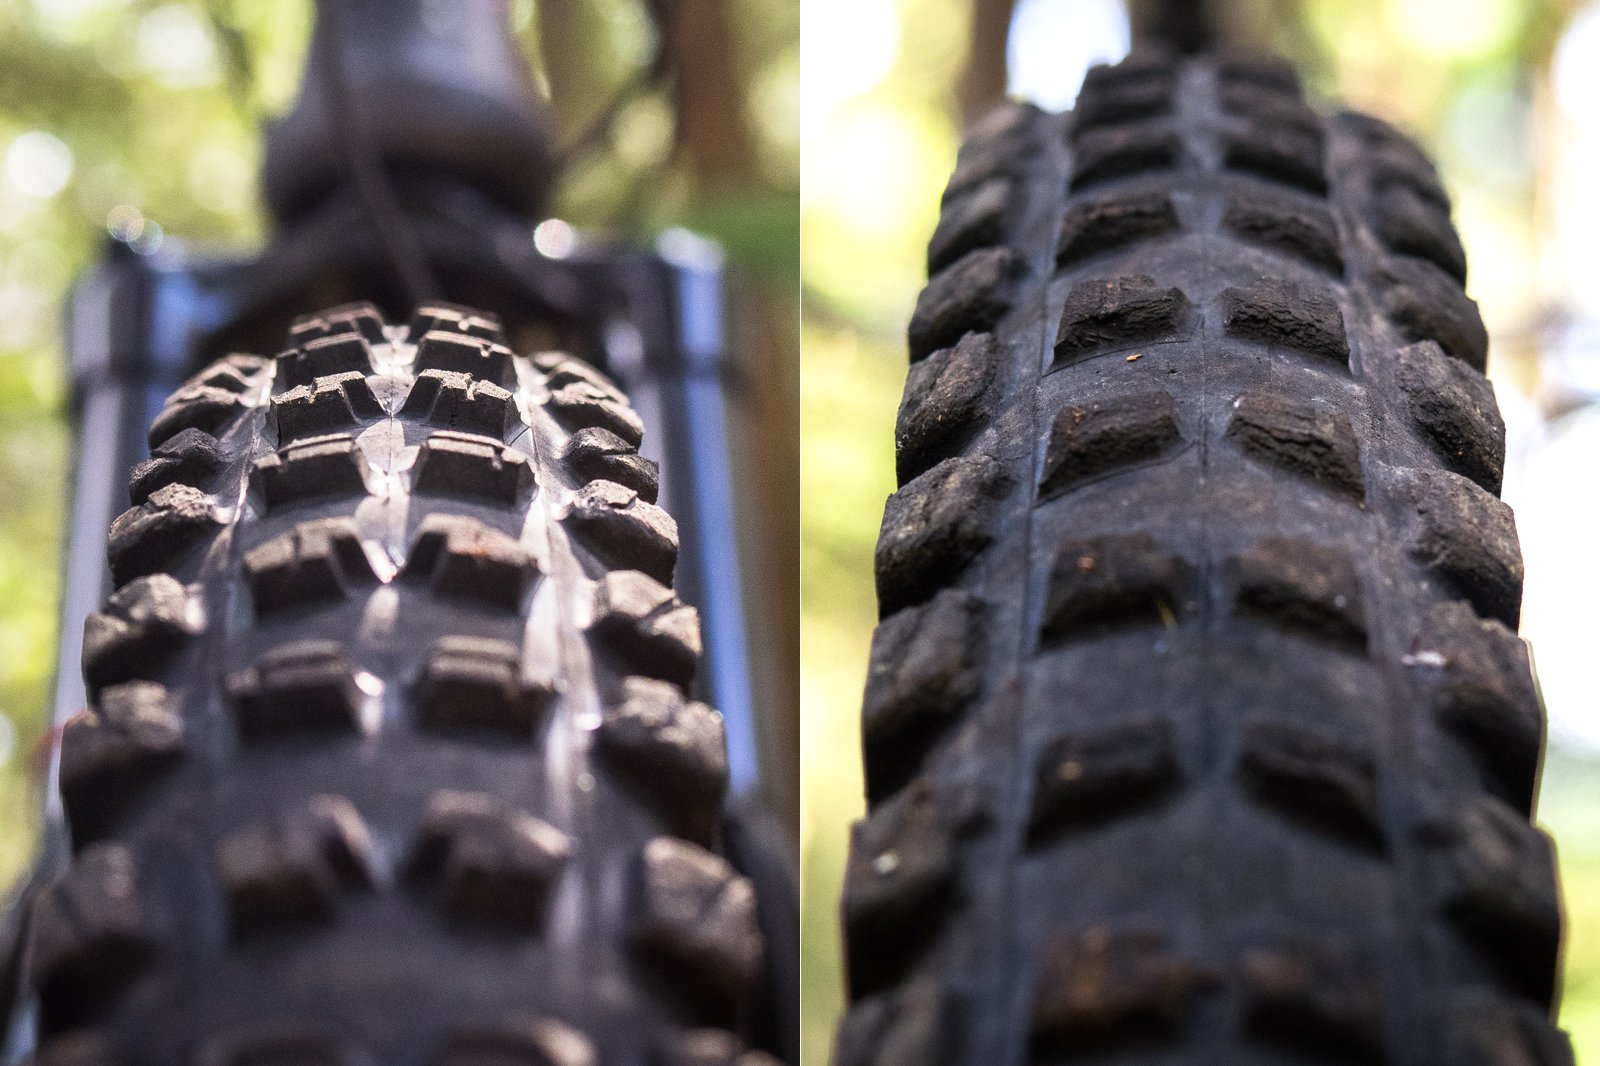 e*thirteen TRSr Tires - wear